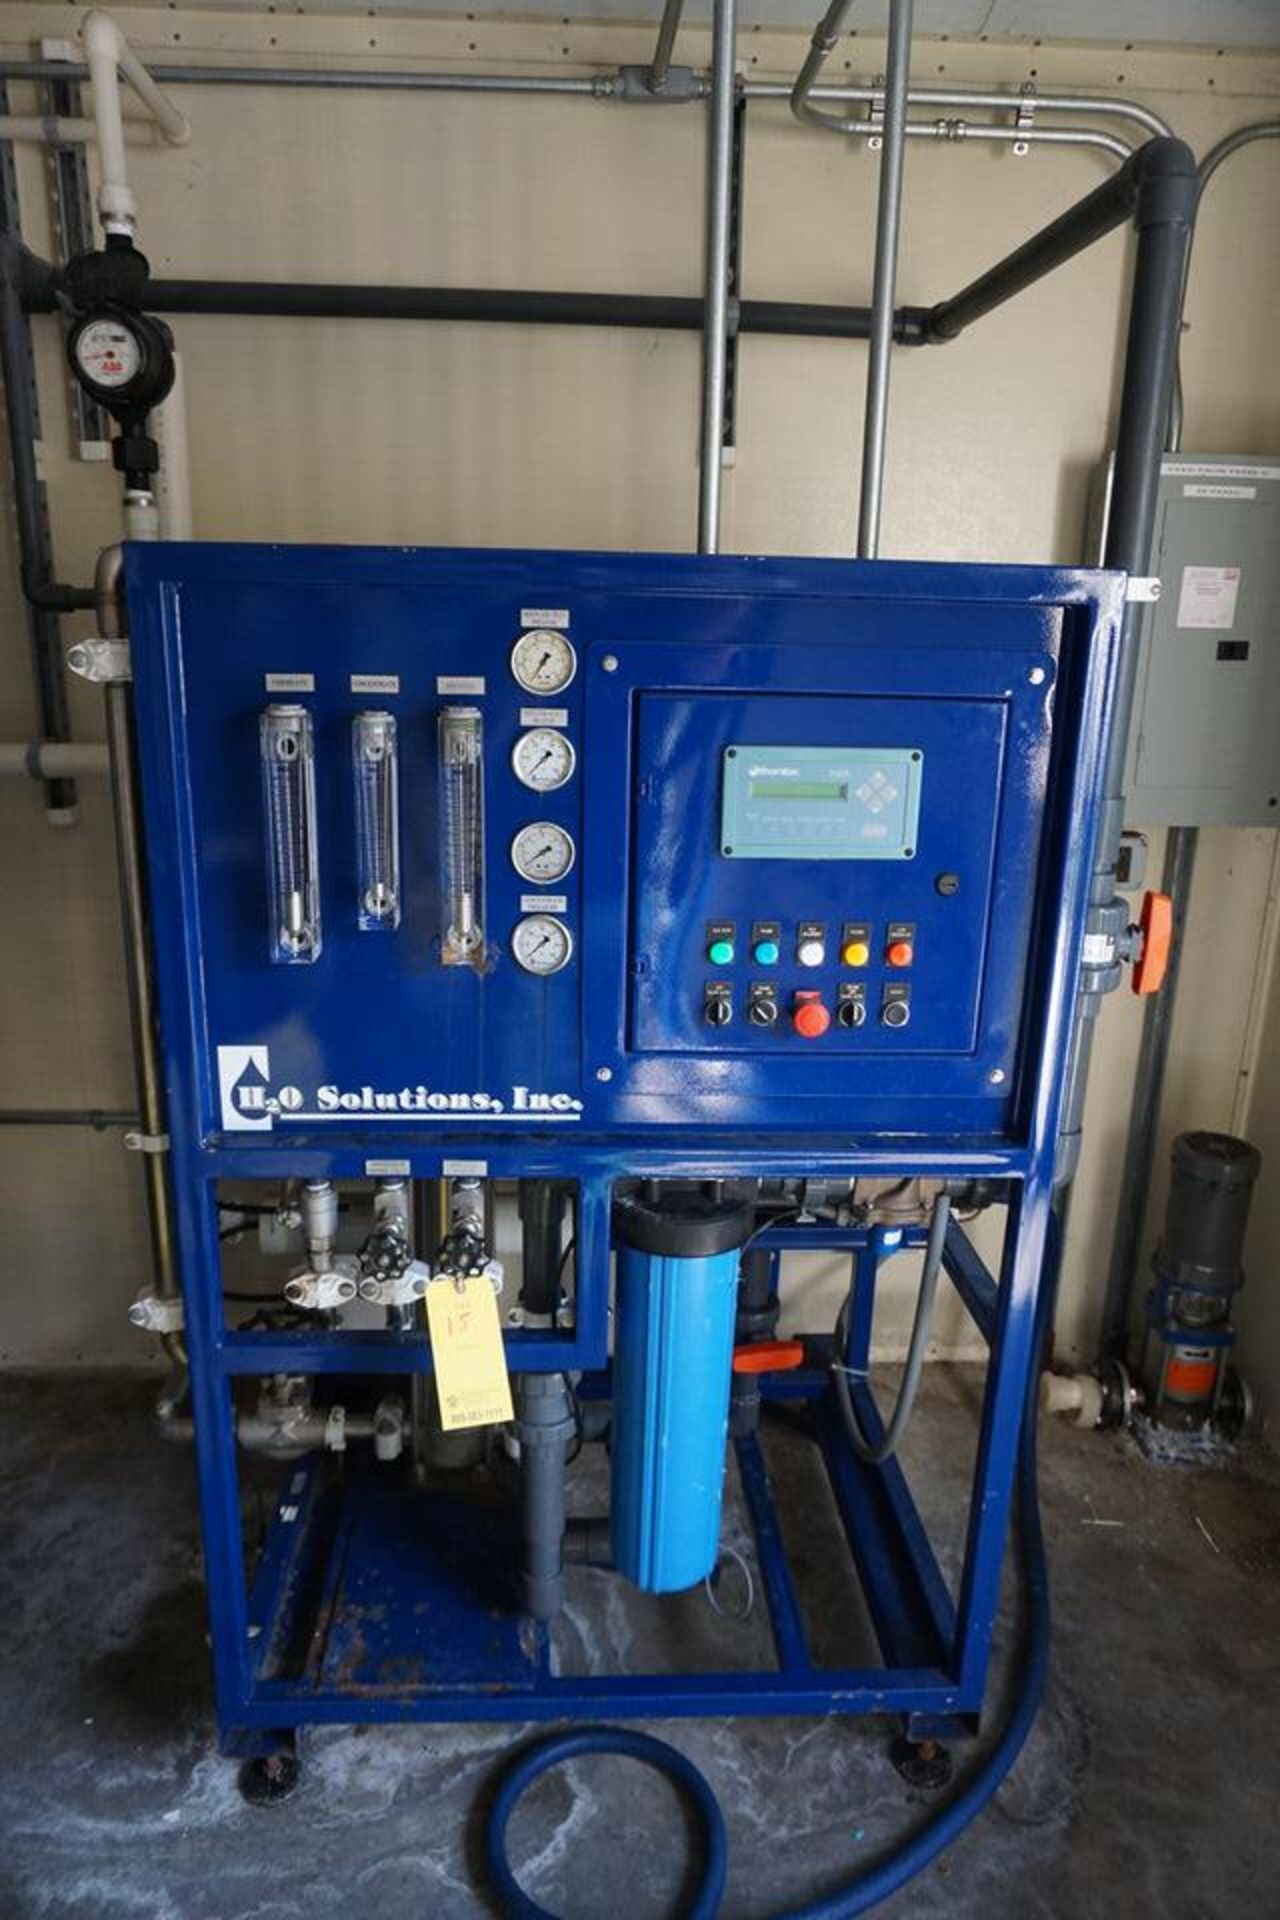 H20 SOLUTIONS INC DI WATER PLANT W/ THORNTON 200CR CONTROL - Image 12 of 12